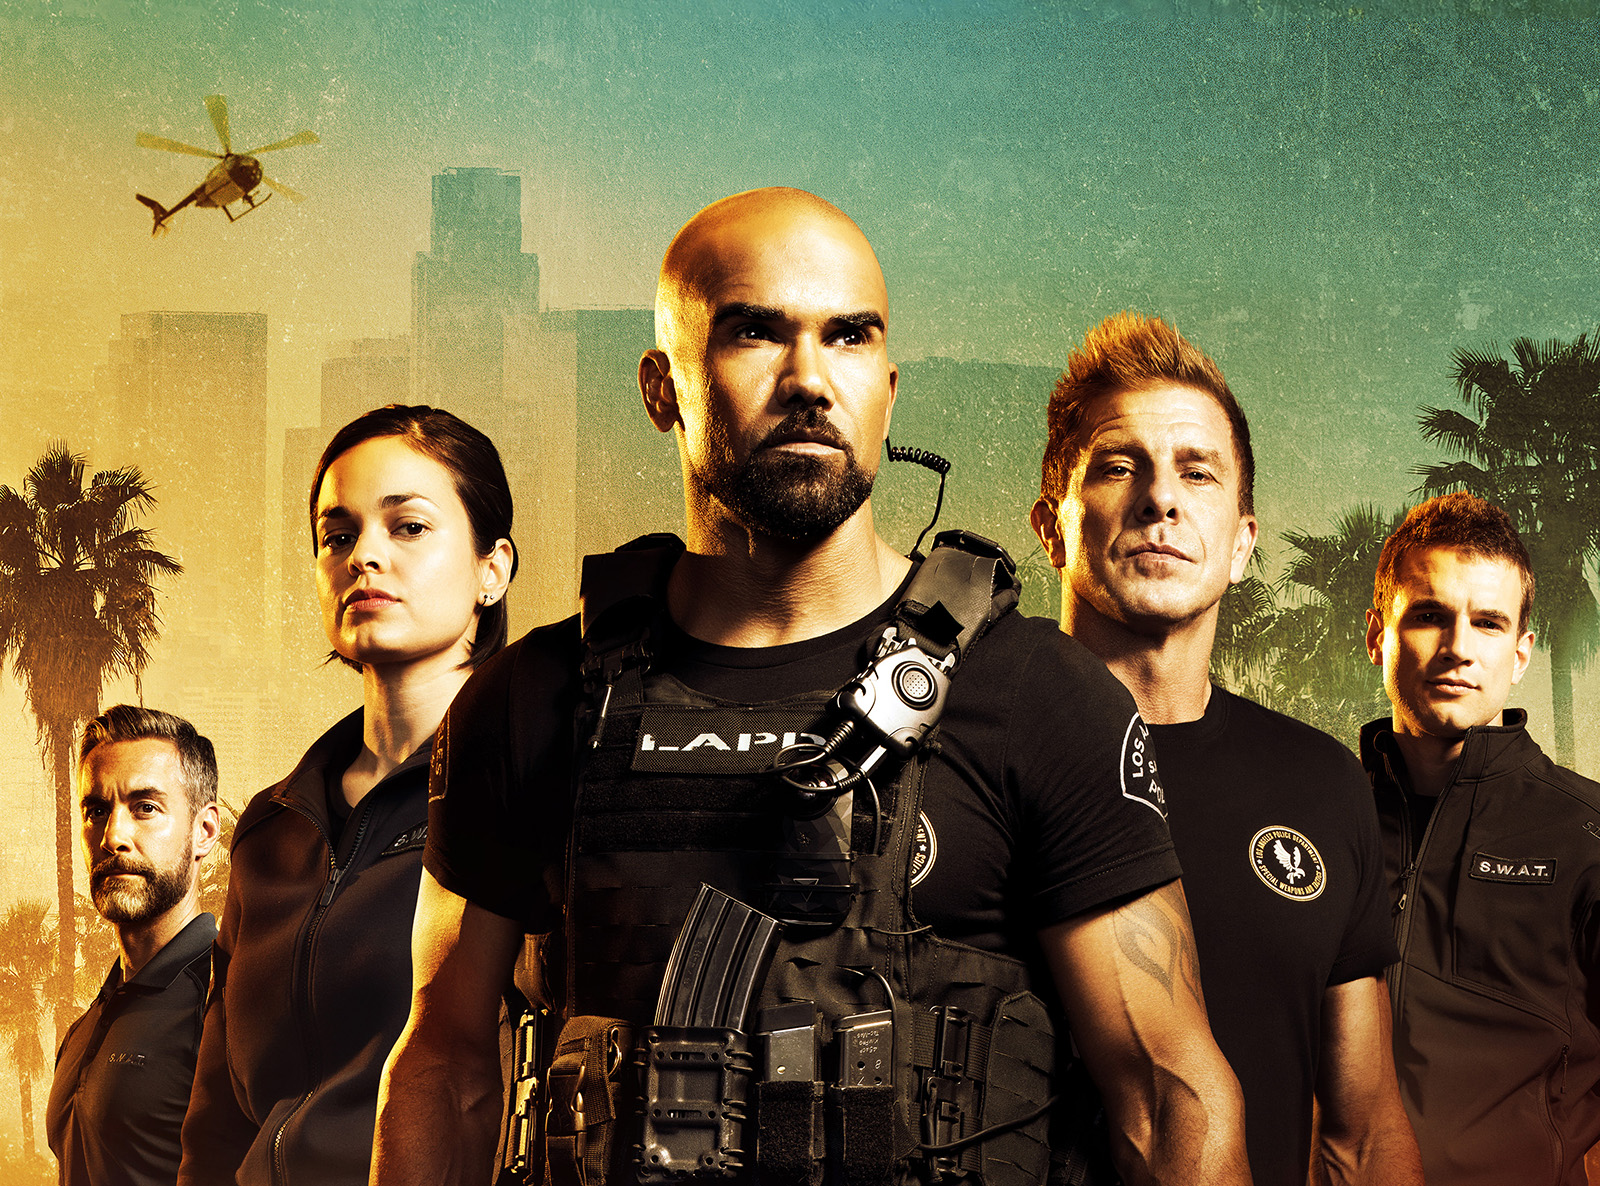 Swat Cbs Images Swat Team Hd Wallpaper And Background Photos